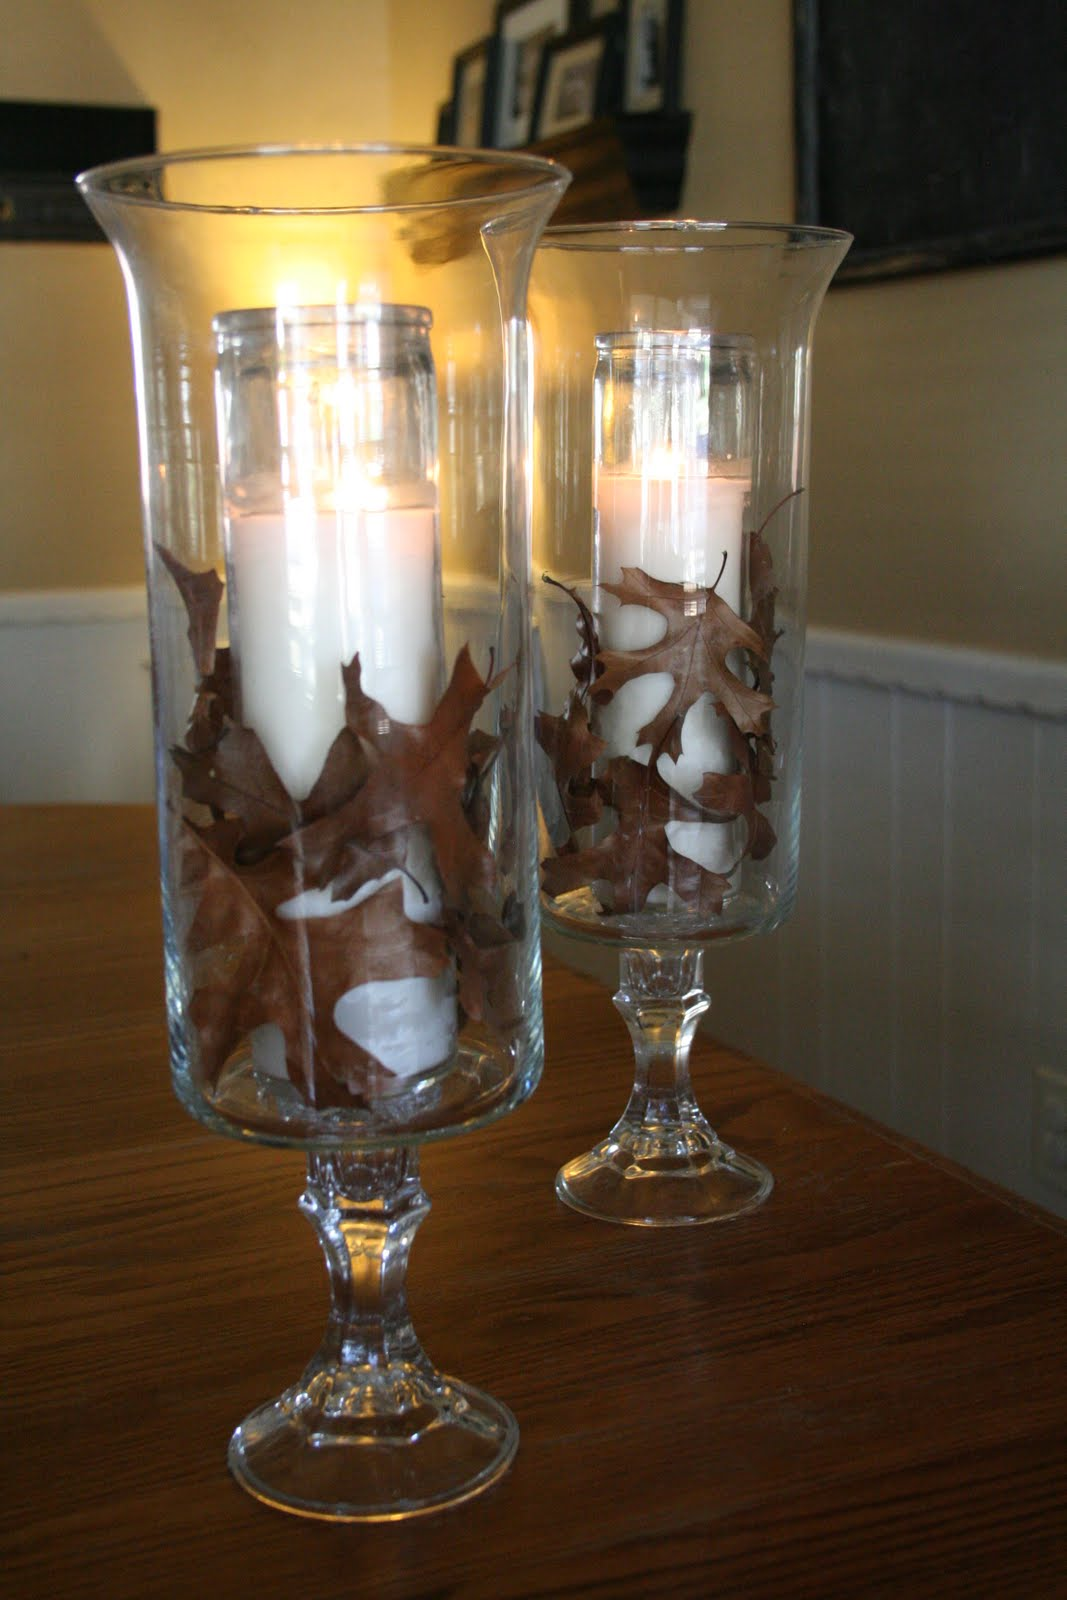 Hurricane vase ideas vases sale